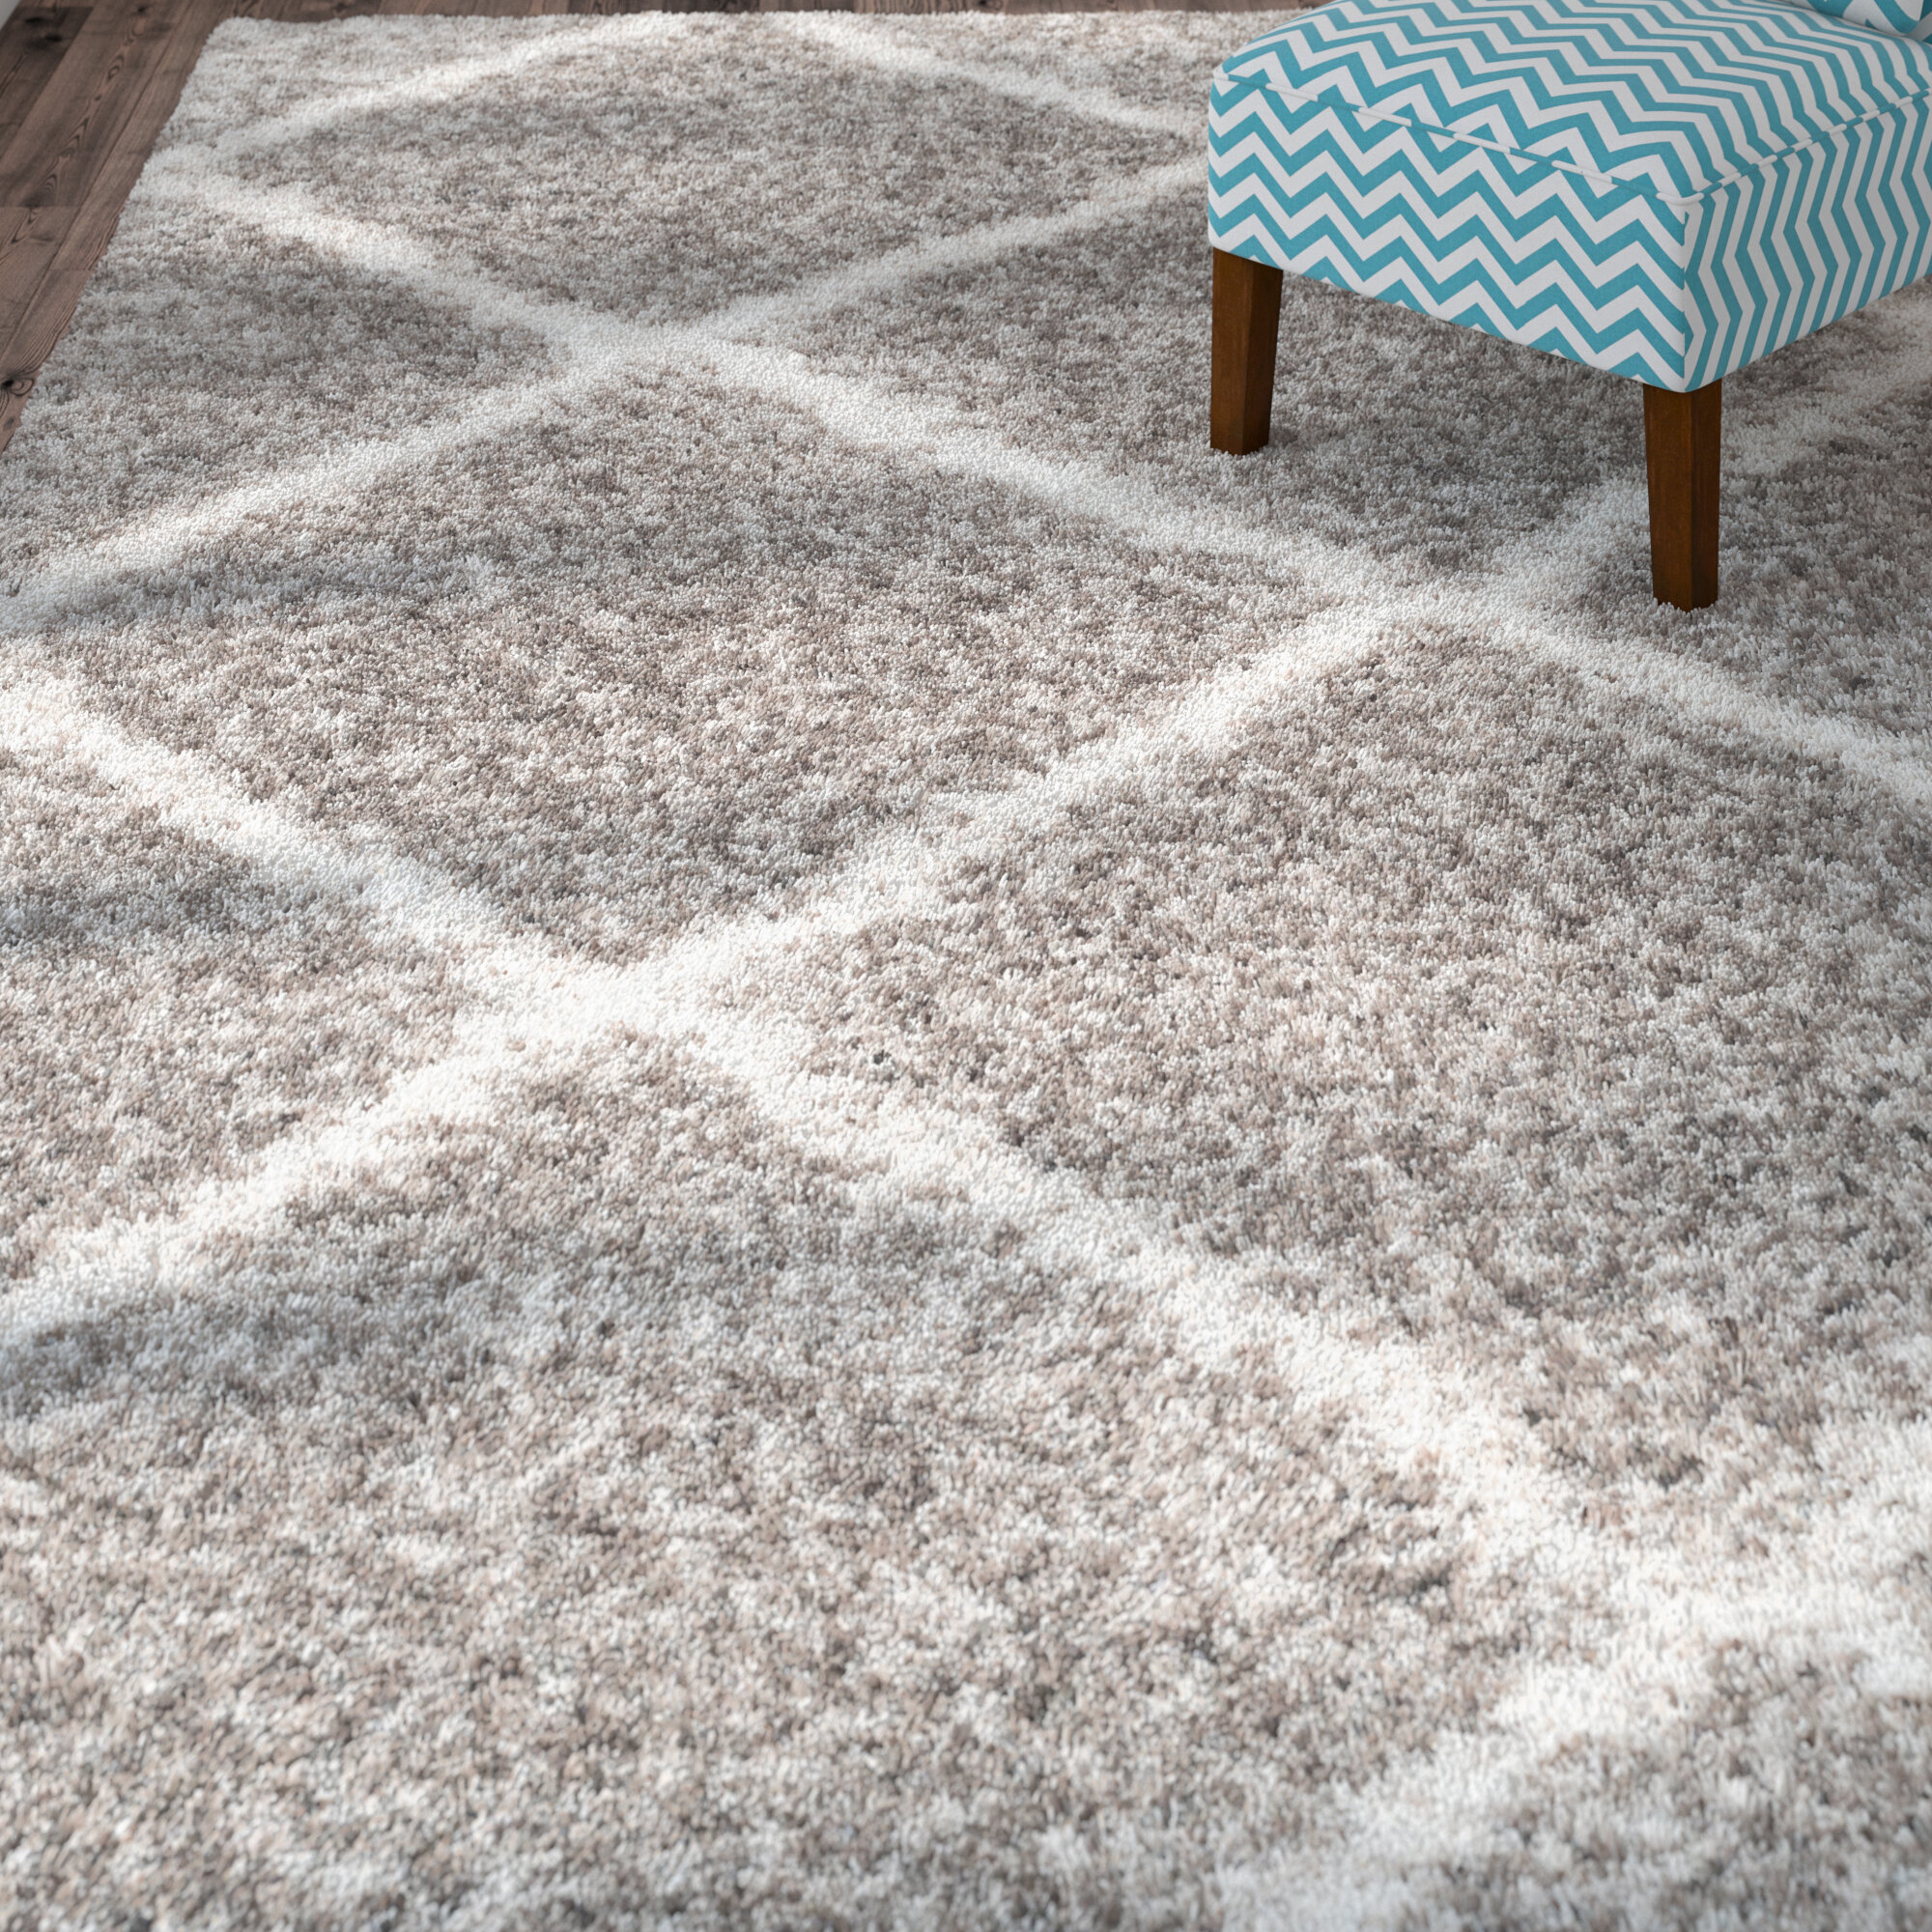 pattern artistic leather tonal mafi media natural grey cowhide and is dramatic joseph gry with form cotton abboud an content chenille handmade combination mixed chicago of this rug area